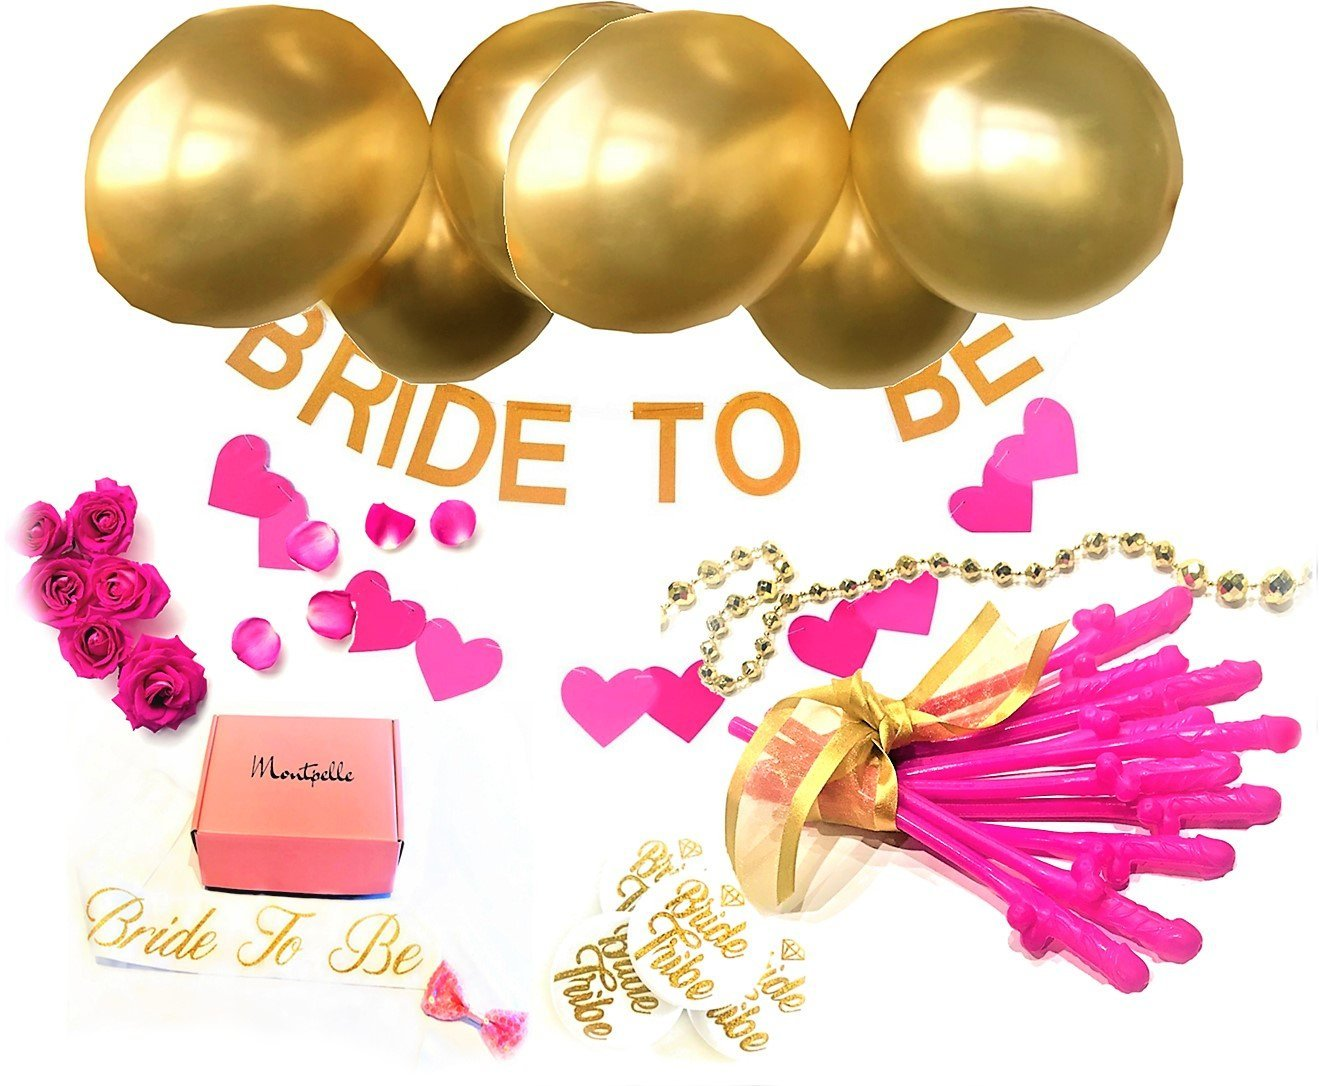 Bachelorette Party Decorations Kit Gold - Pink Heart Banner, Bridal Shower Sash, Bride to Be Banner, Bachelorette Party Straws, Bride Tribe Pins, Gold Balloons by Montpelle (Image #1)